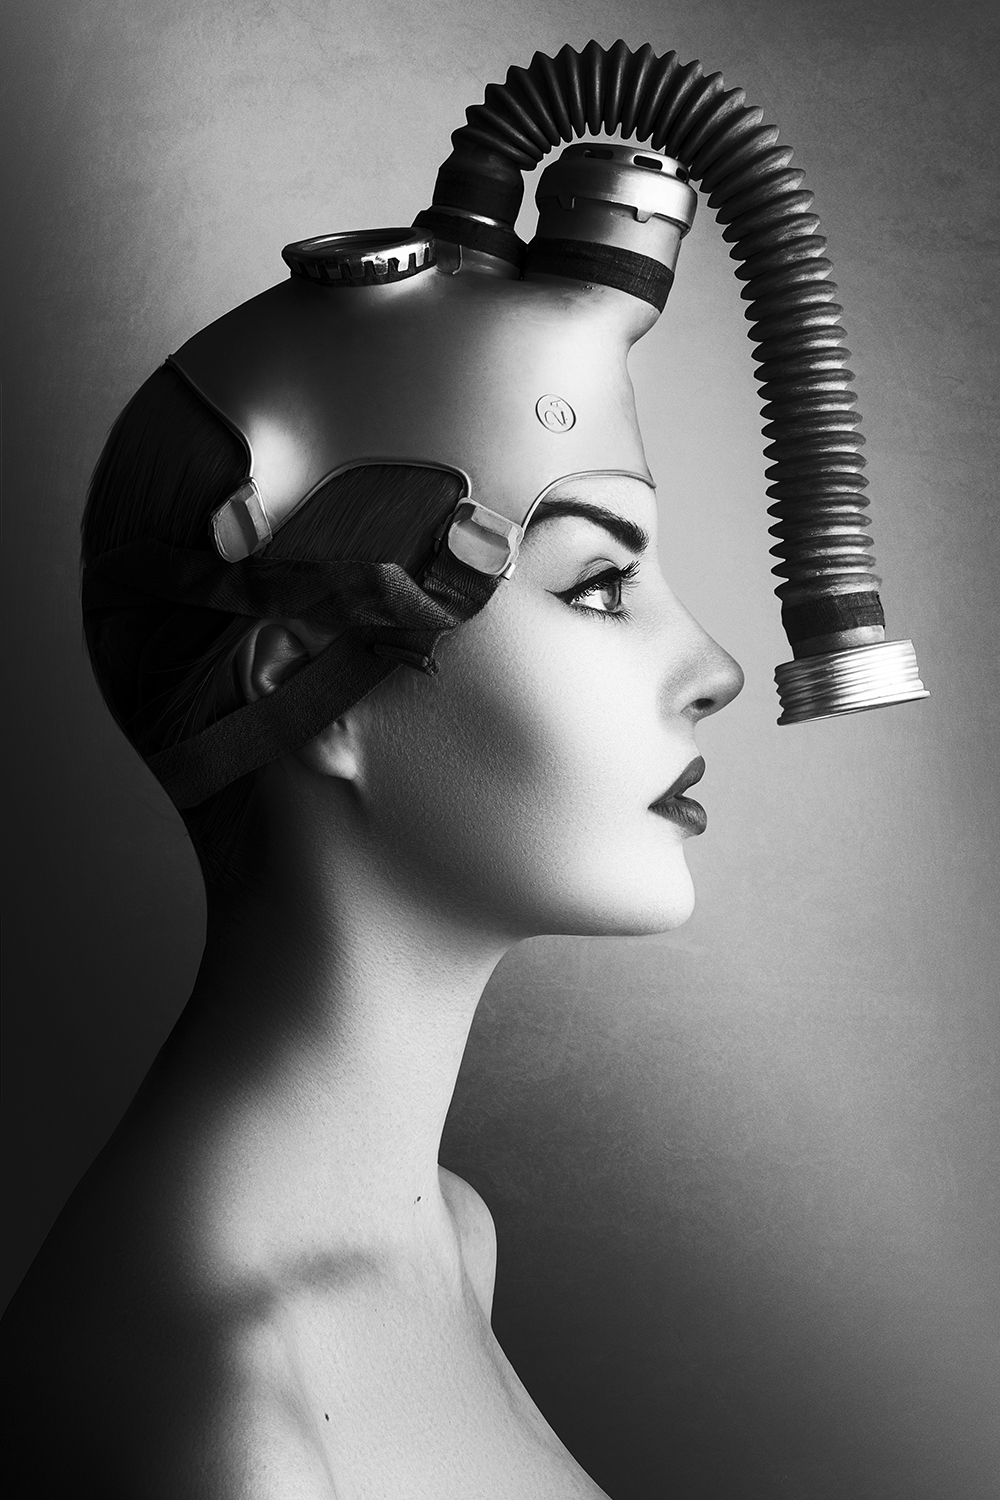 Marc Lamey - Audrey Dufour (audrey.elyksir) - makeup by model